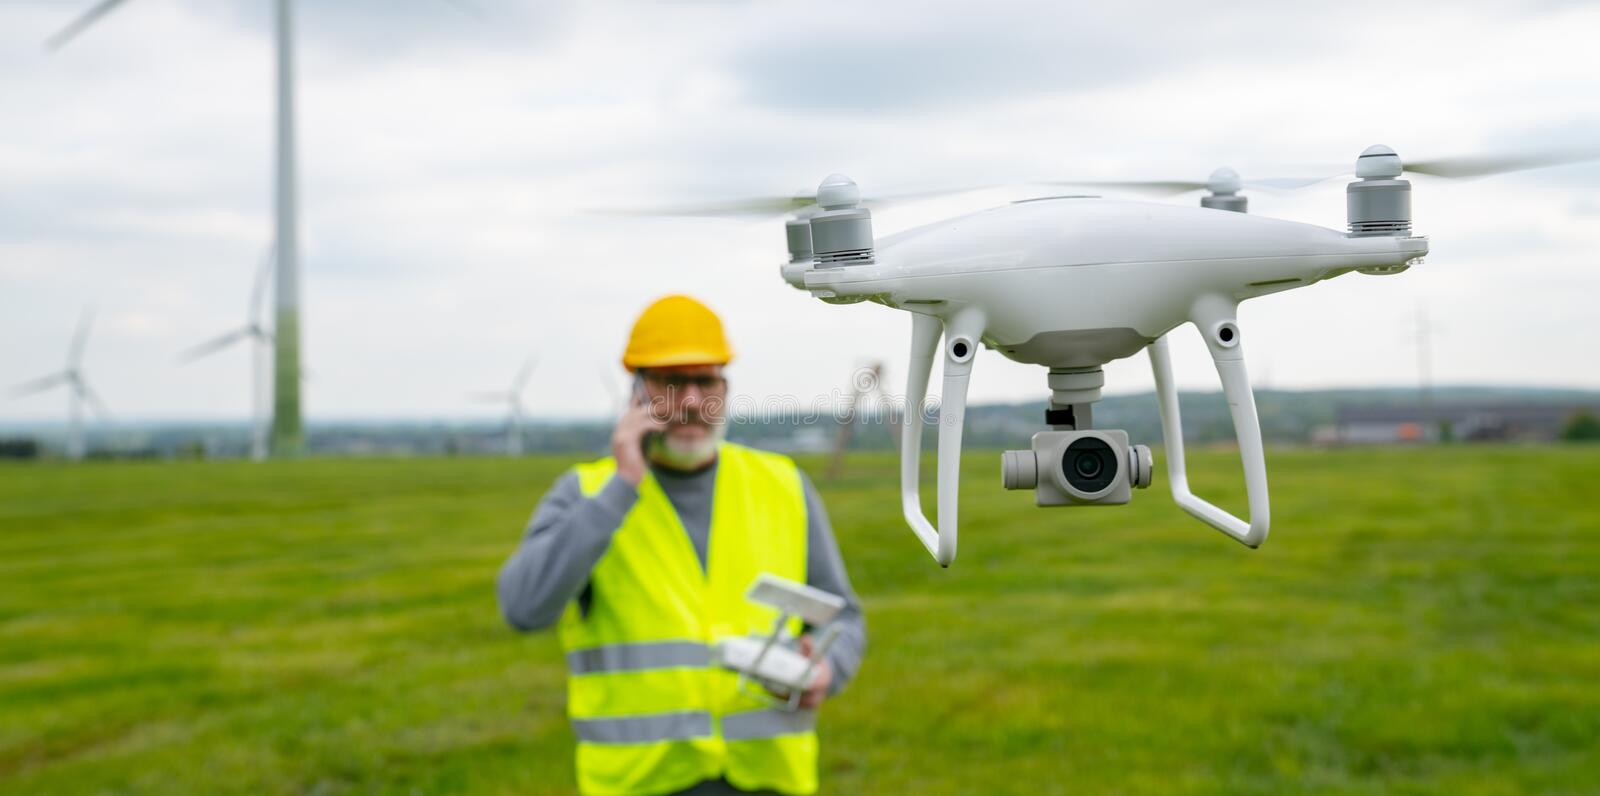 Drone operated by construction worker inspecting wind turbine royalty free stock image